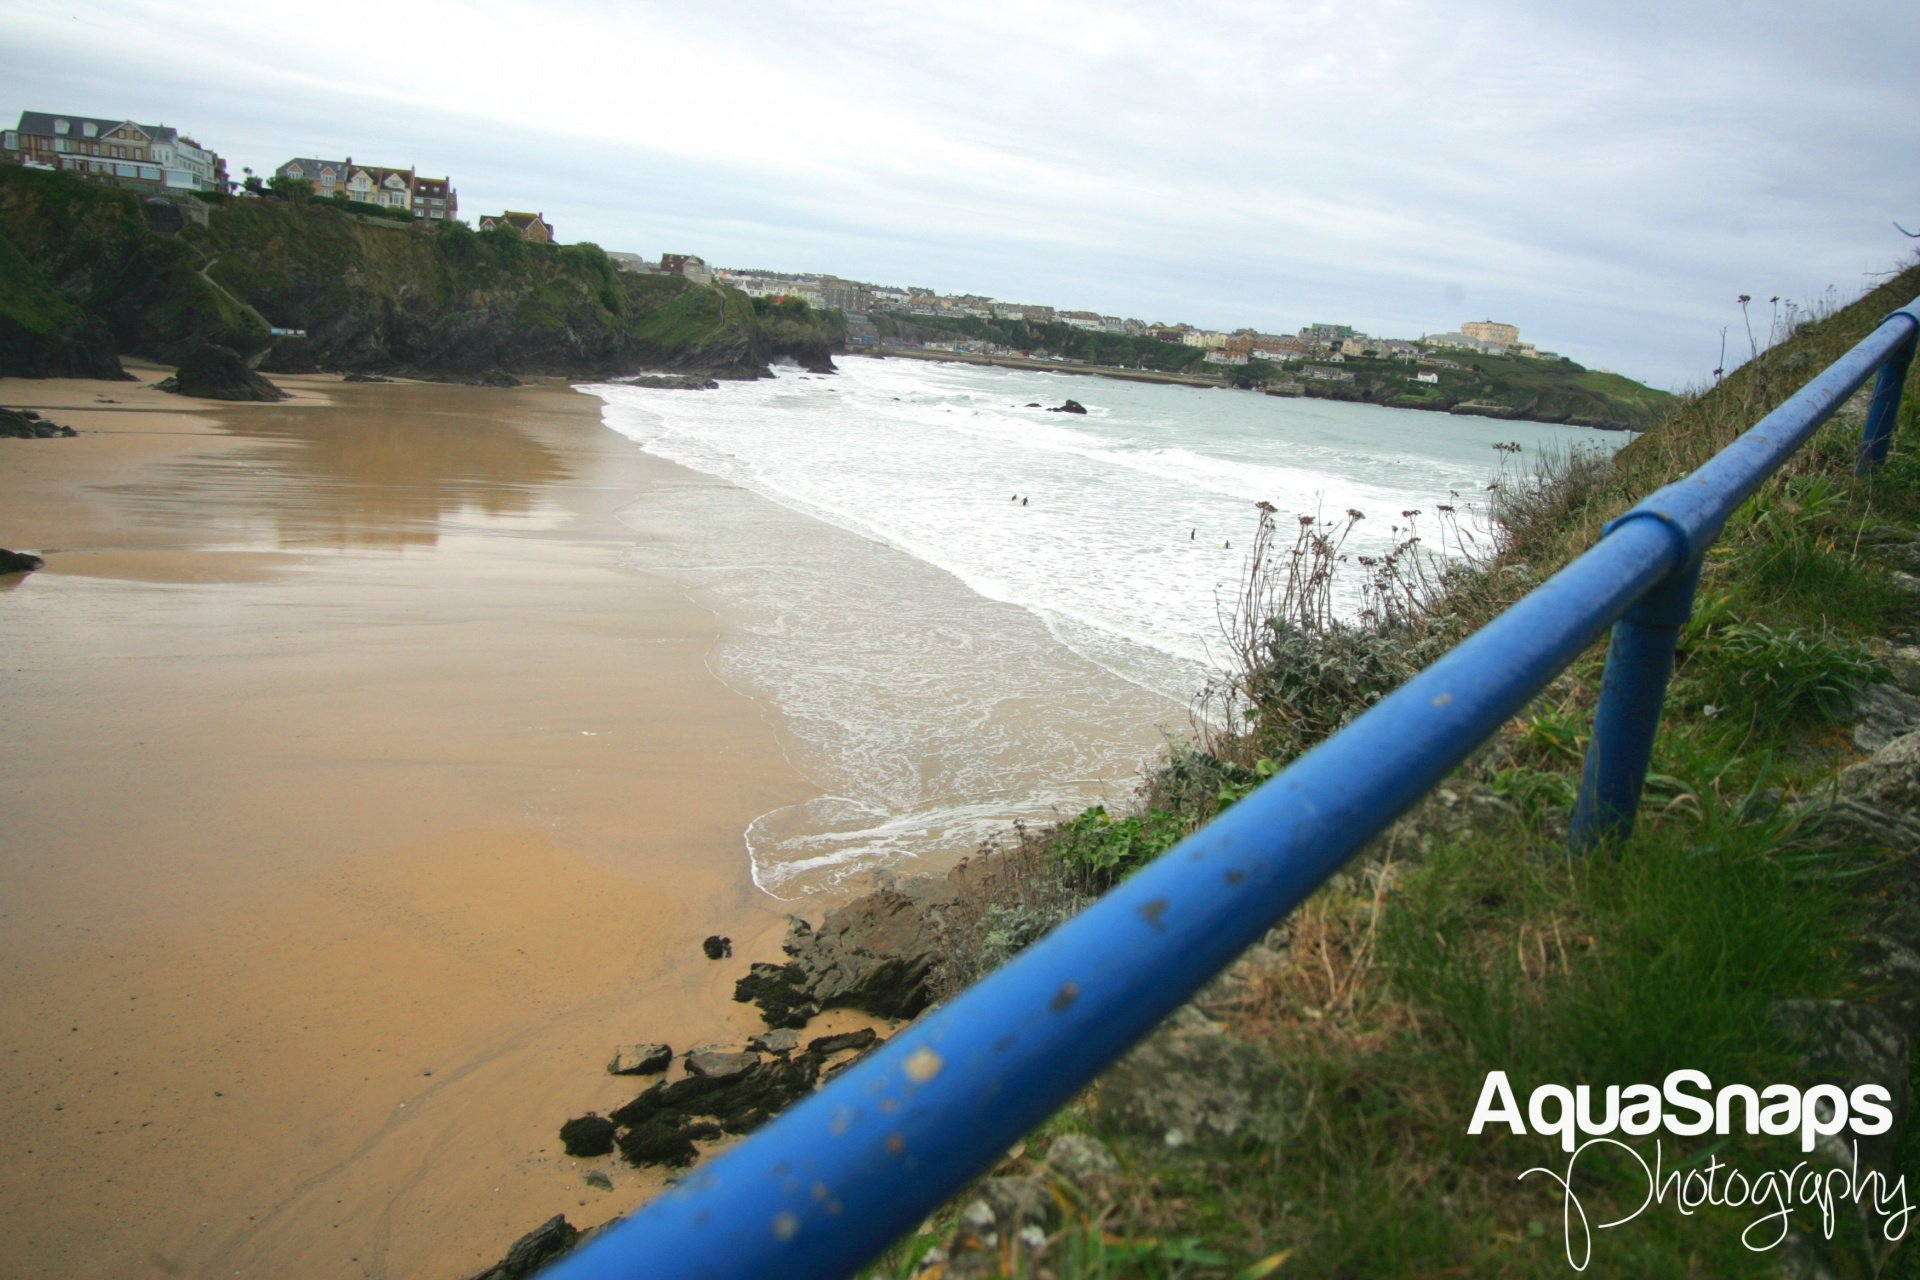 Aqua Snaps's photo of Newquay - Towan / Great Western